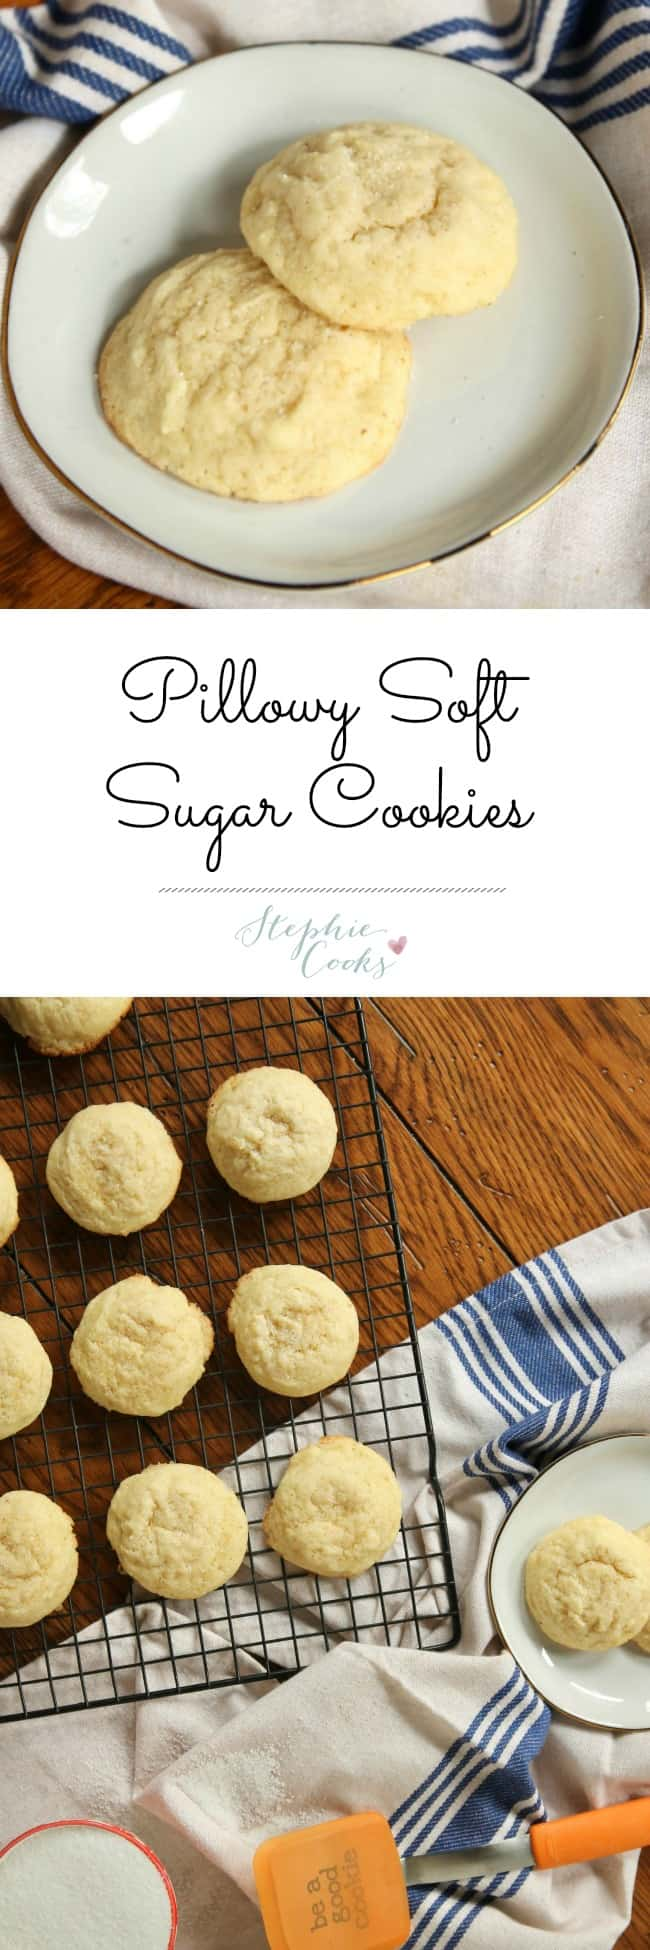 Pillowy Soft Sugar Cookies